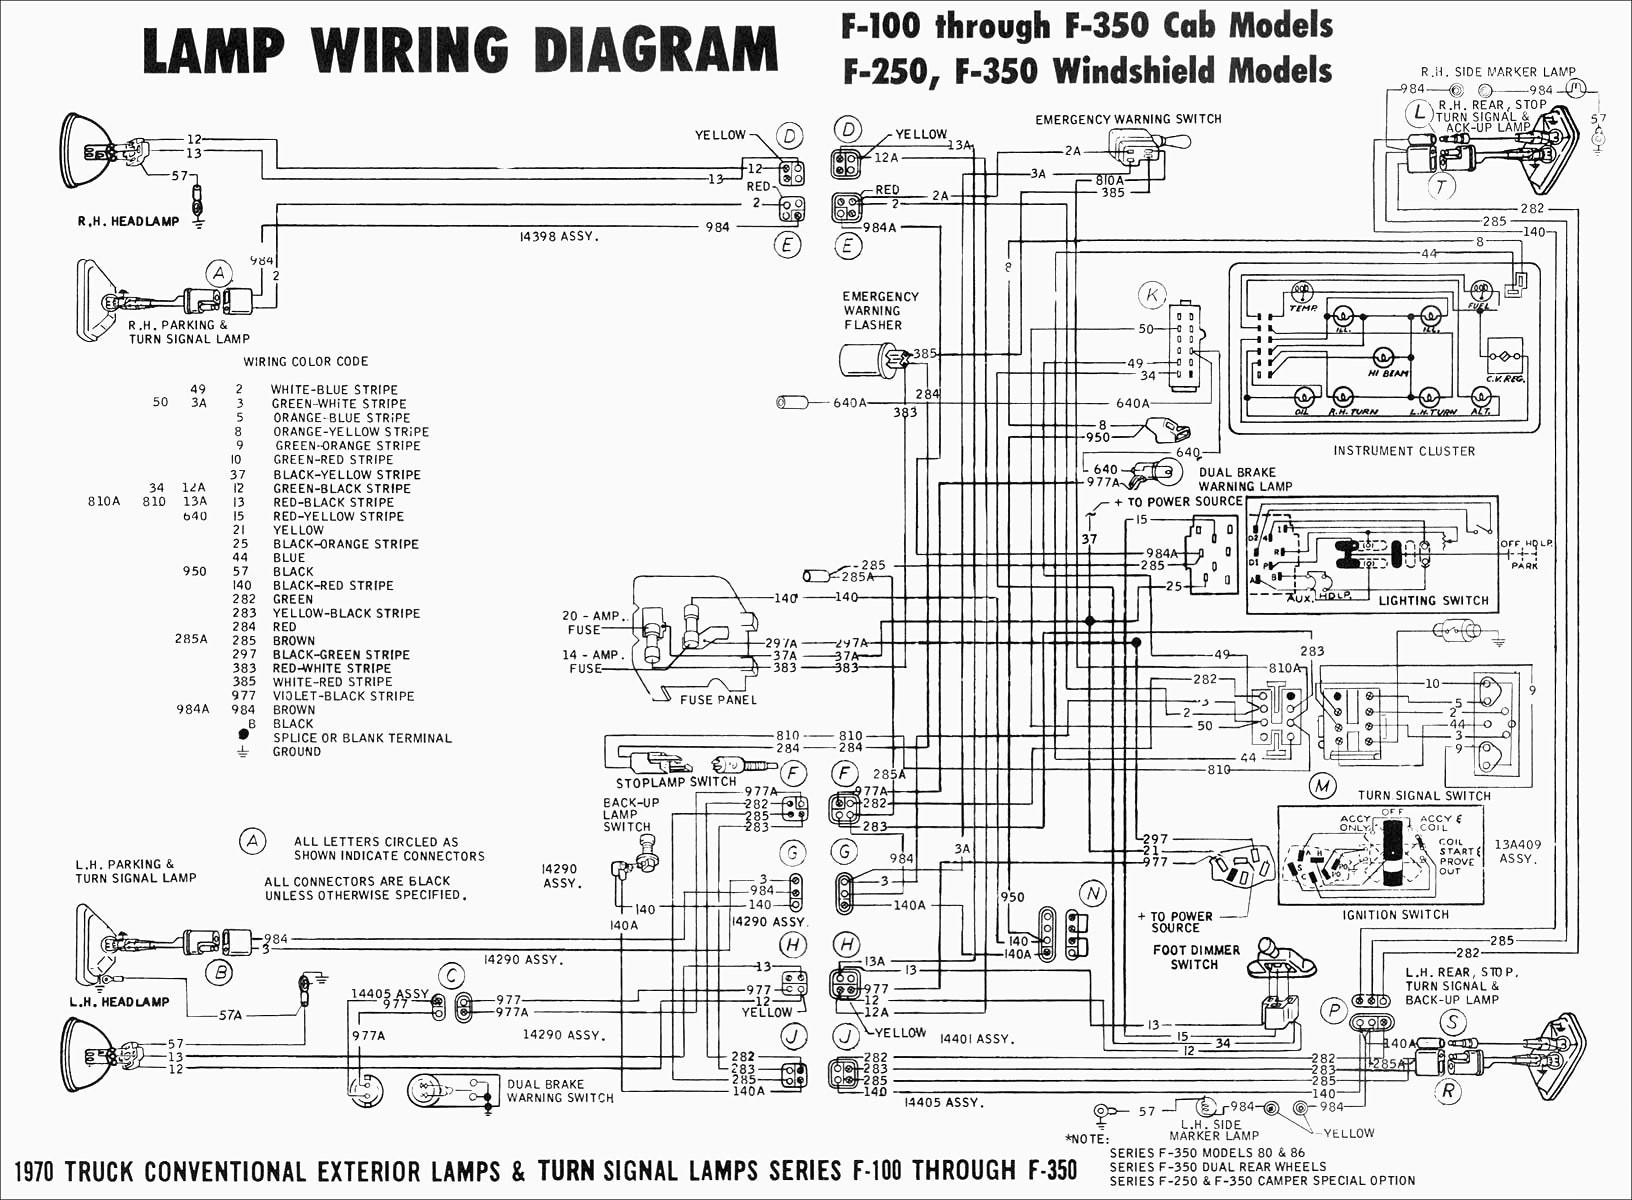 mtd ignition switch wiring diagram | free wiring diagram 2002 mtd wiring  diagram